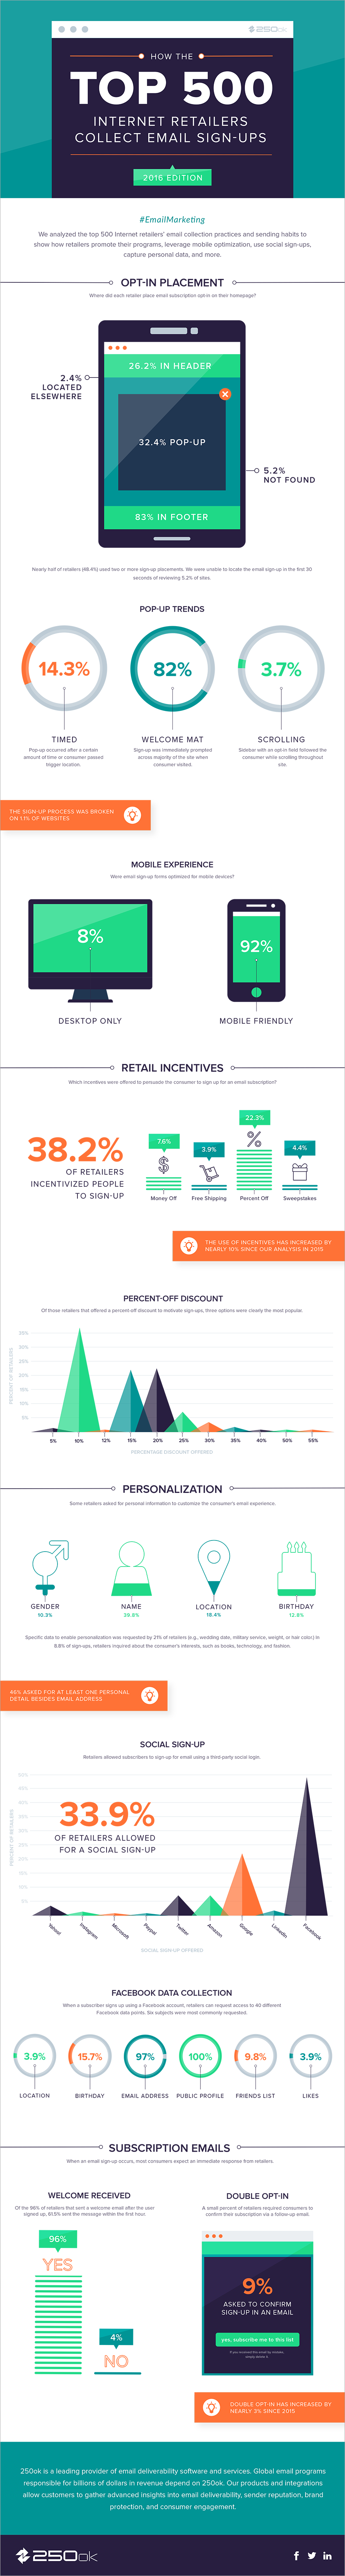 How The Top 500 Internet Retailers Collect Email Sign-ups (2016)